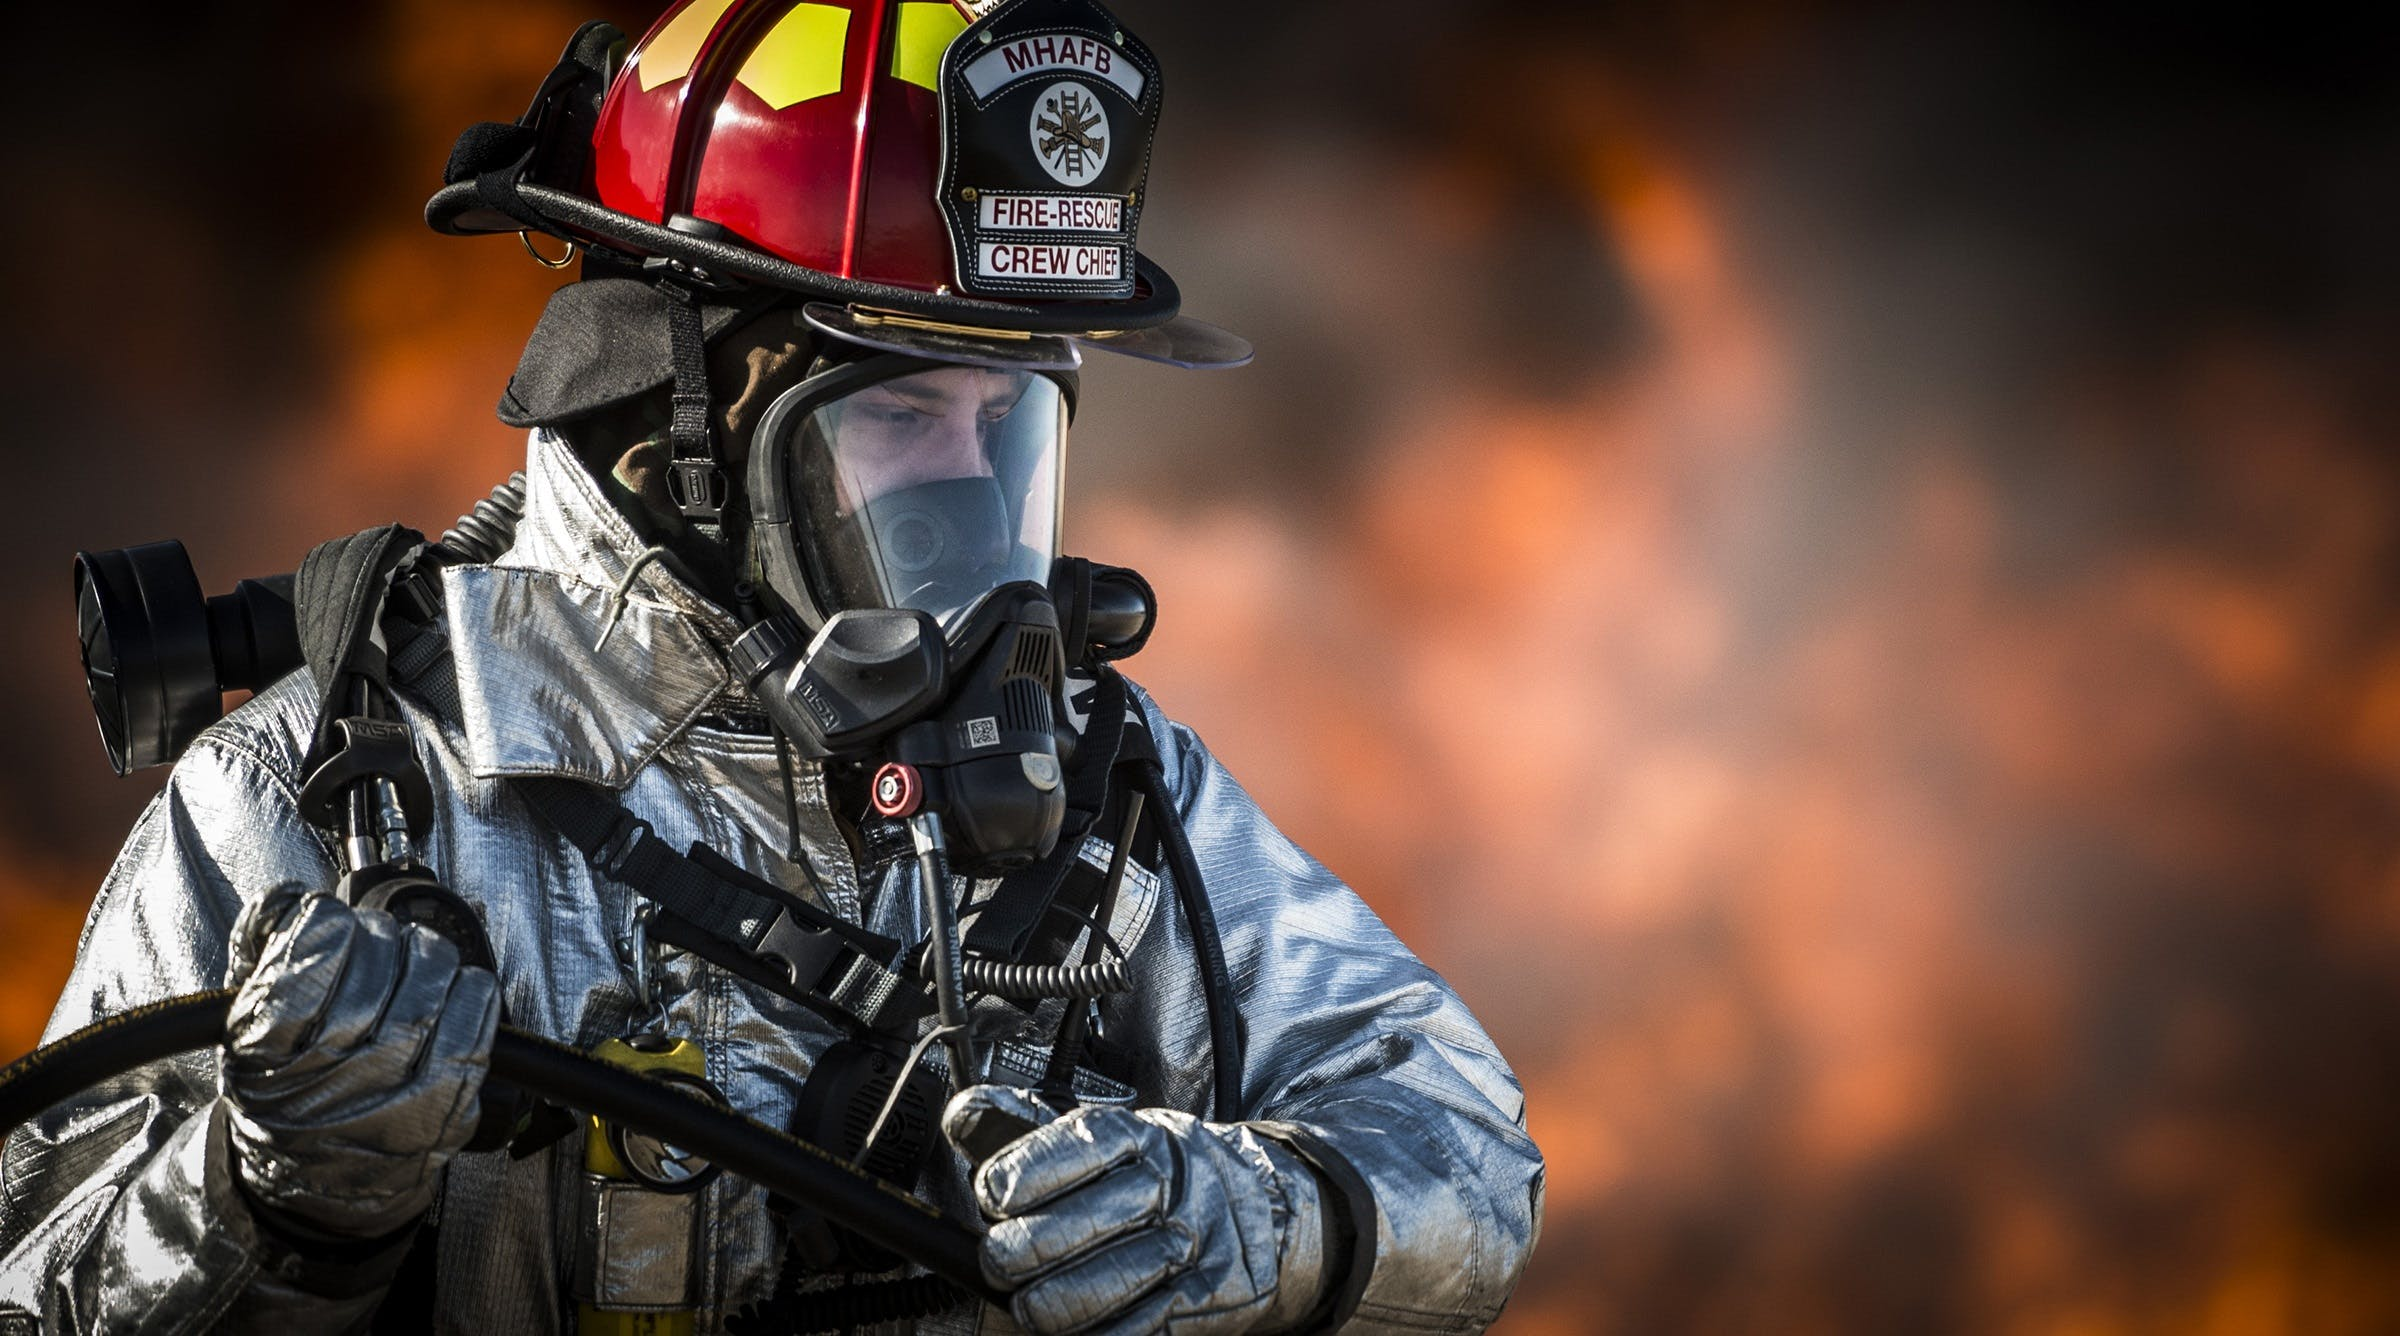 Shallow Focus Photography of Fireman